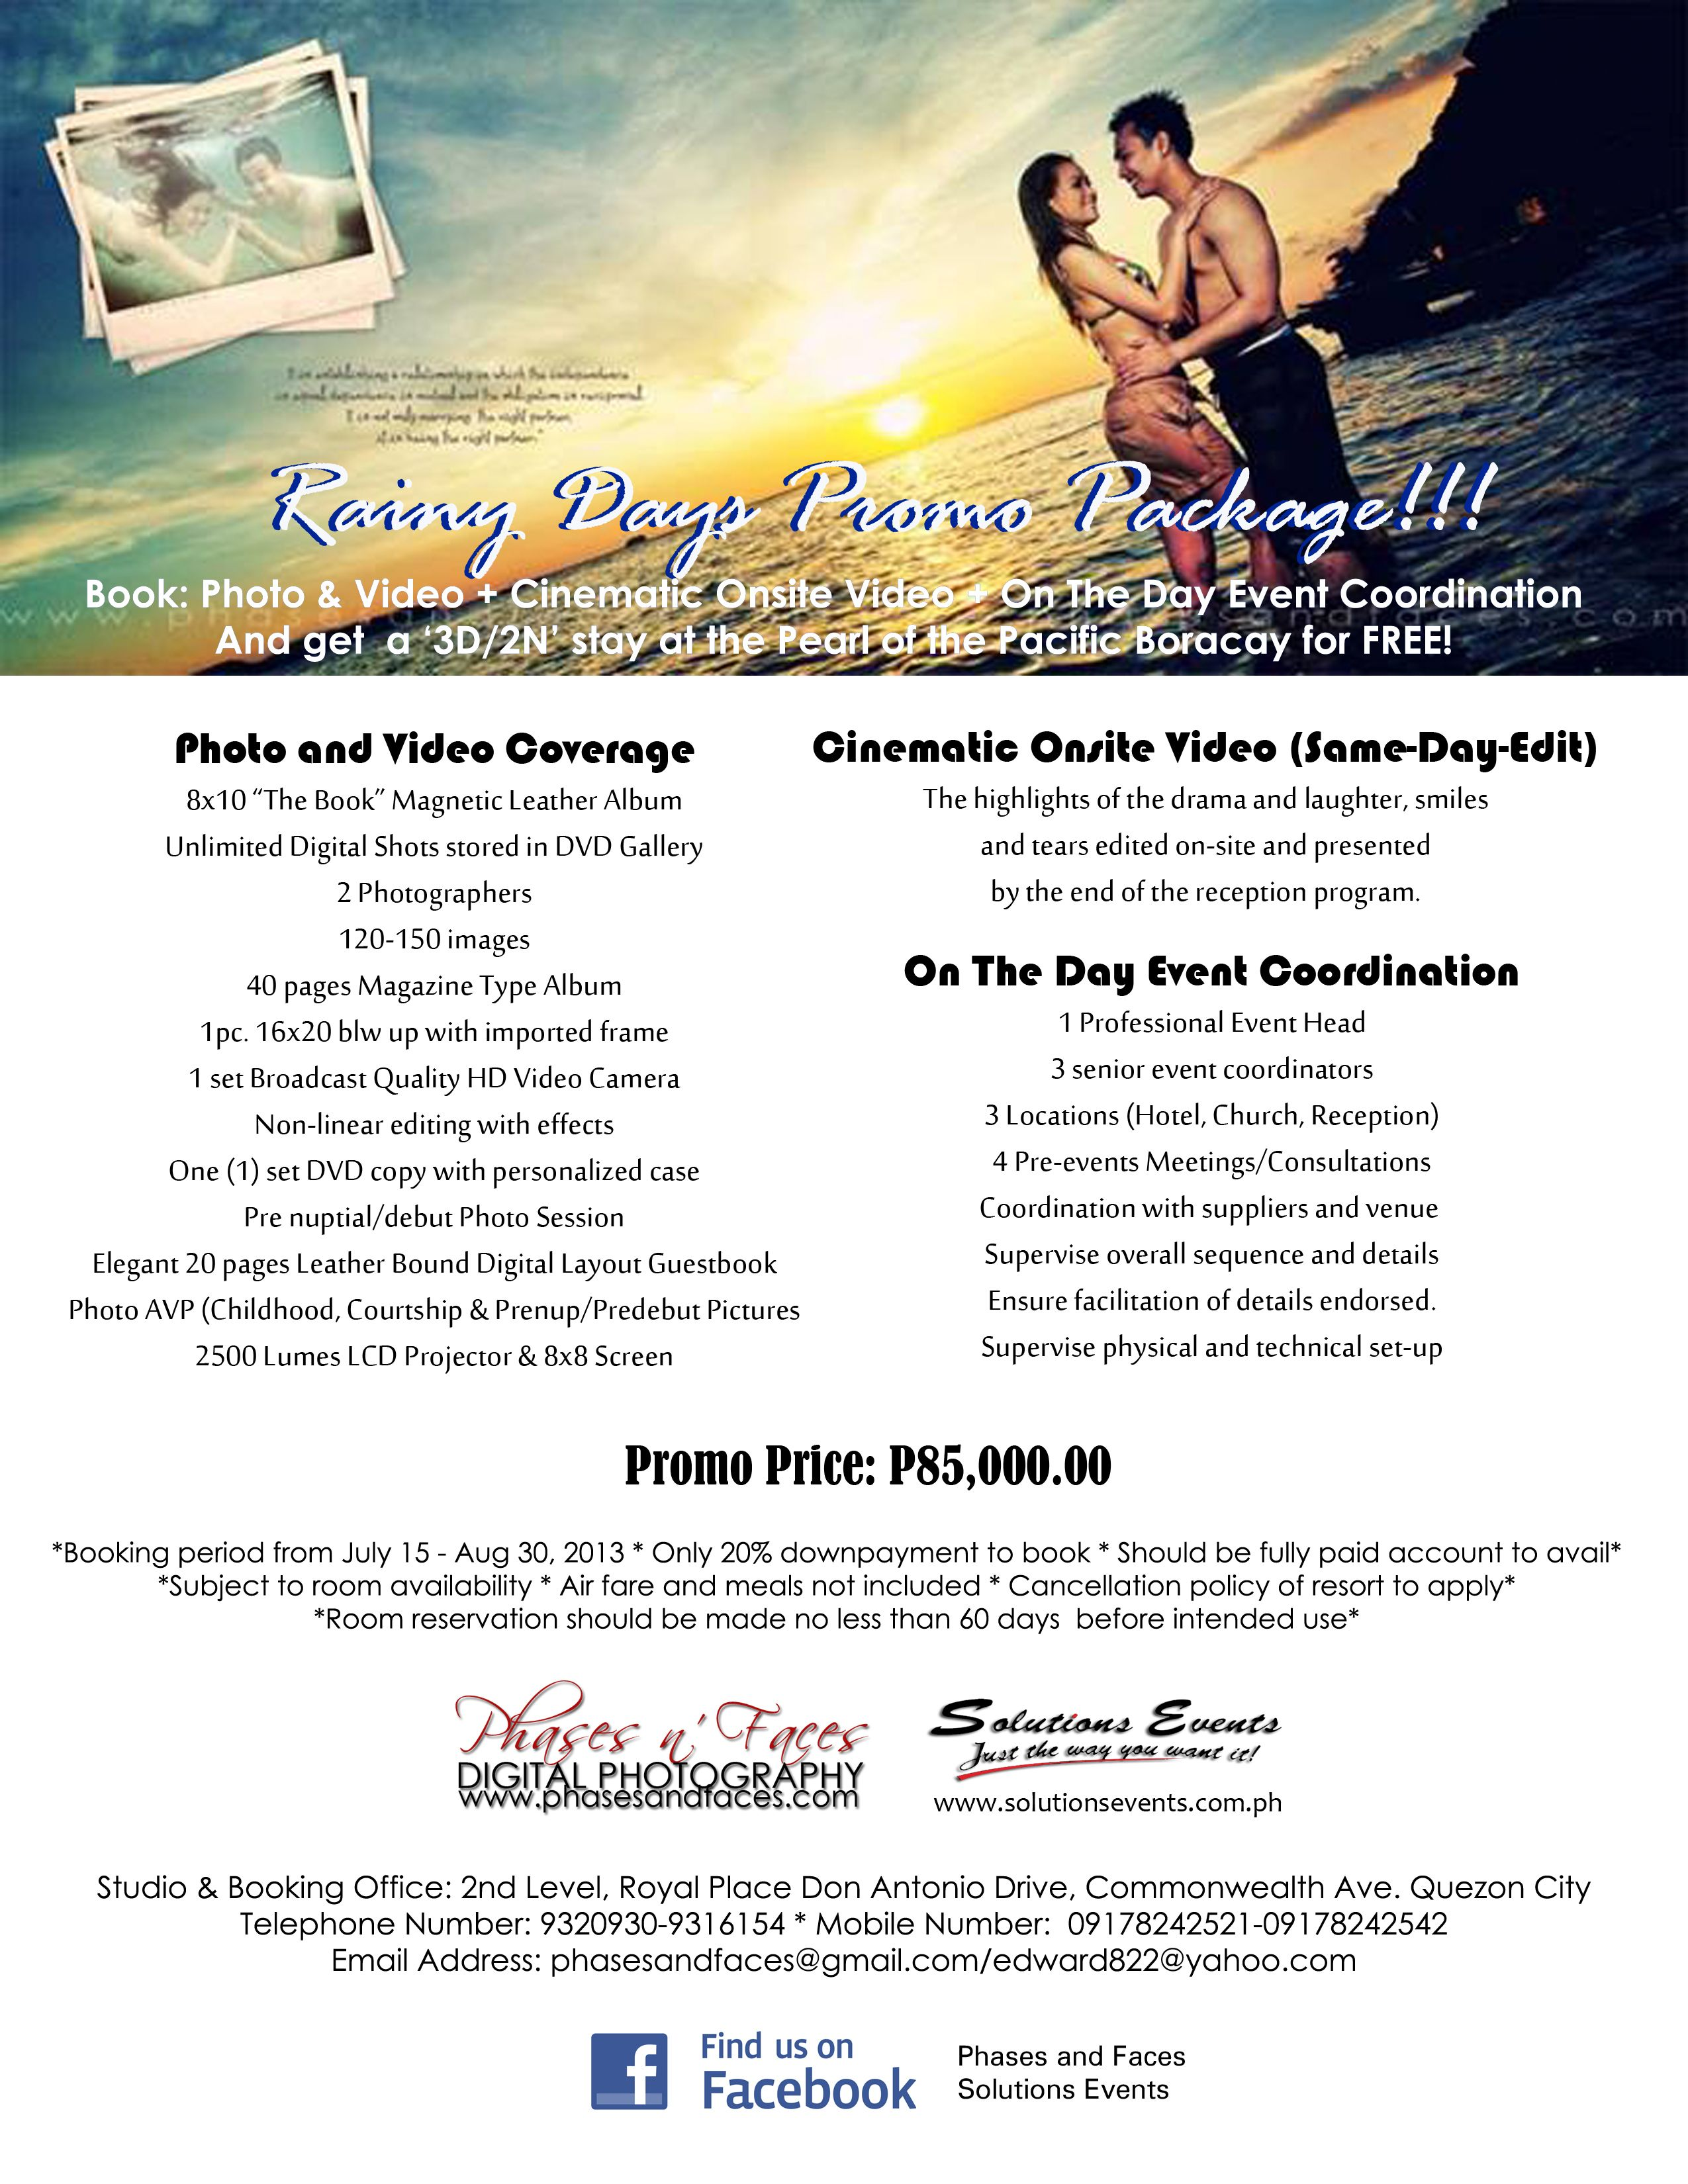 Rainy Day Promo Package From Phases N Faces Digital Photography 3 Rainydays